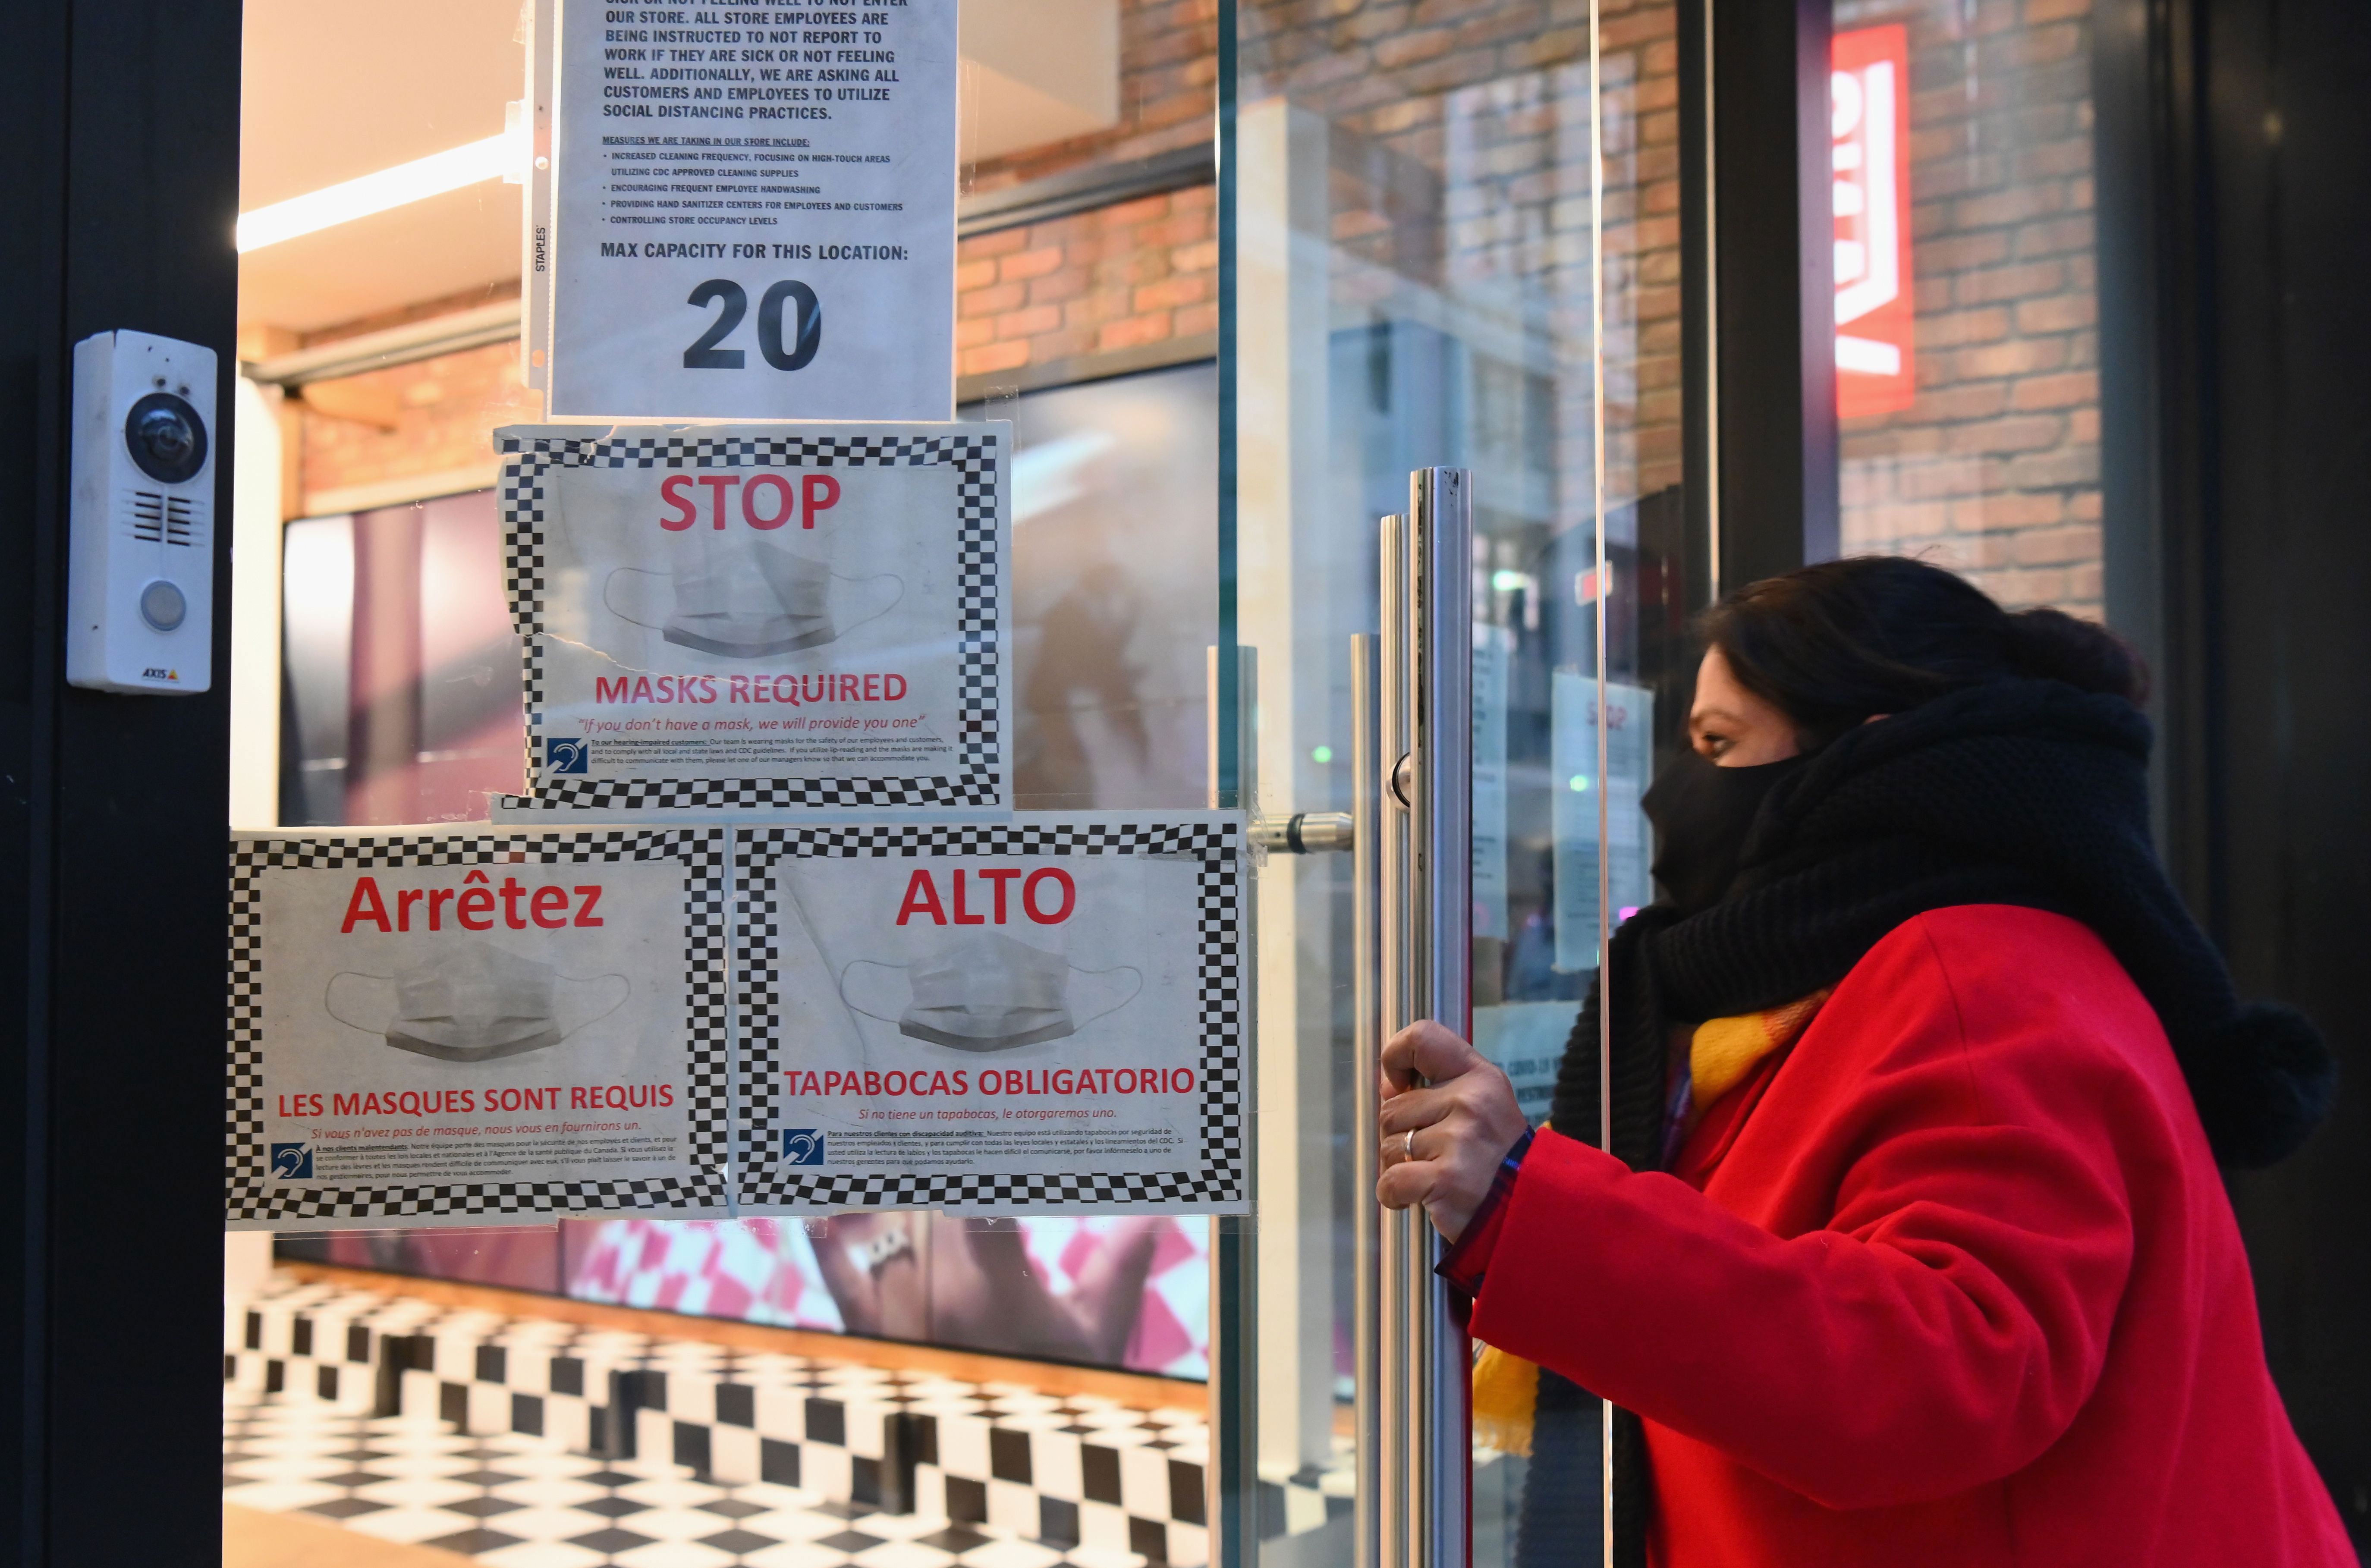 A person opens a door that has signs about masks in New York on January 8.